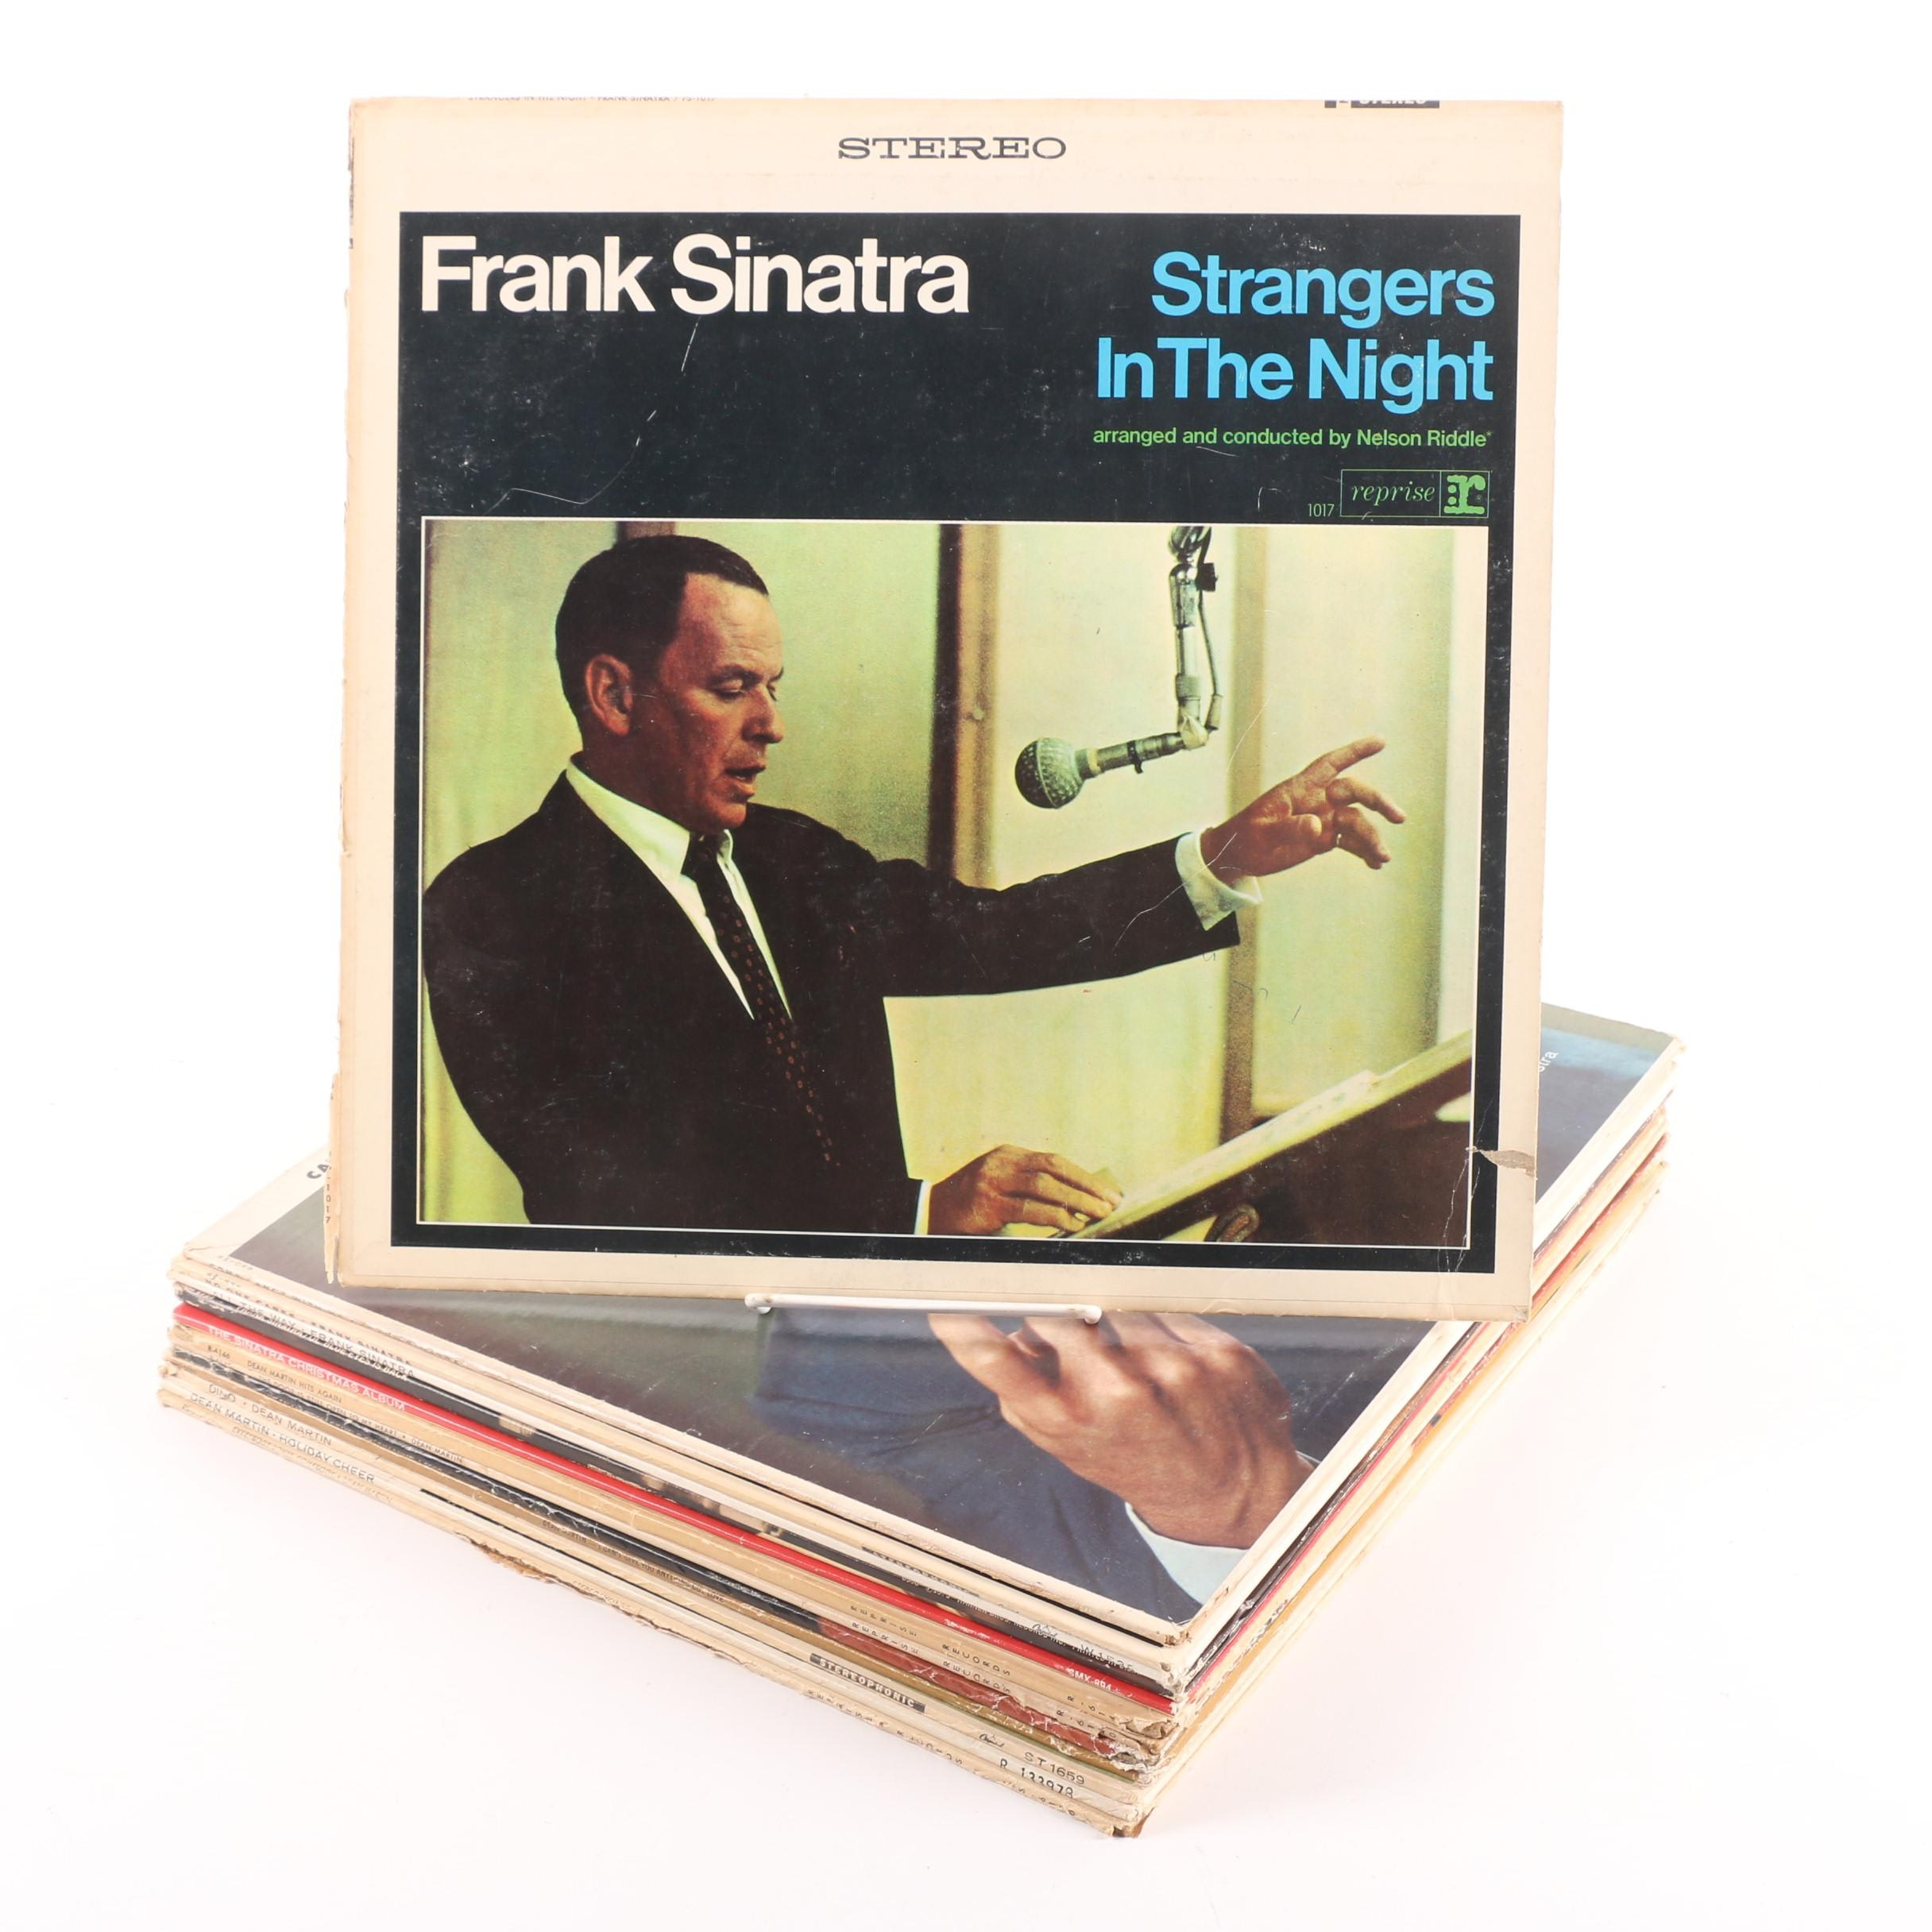 Vintage Frank Sinatra and Dean Martin Jazz Records